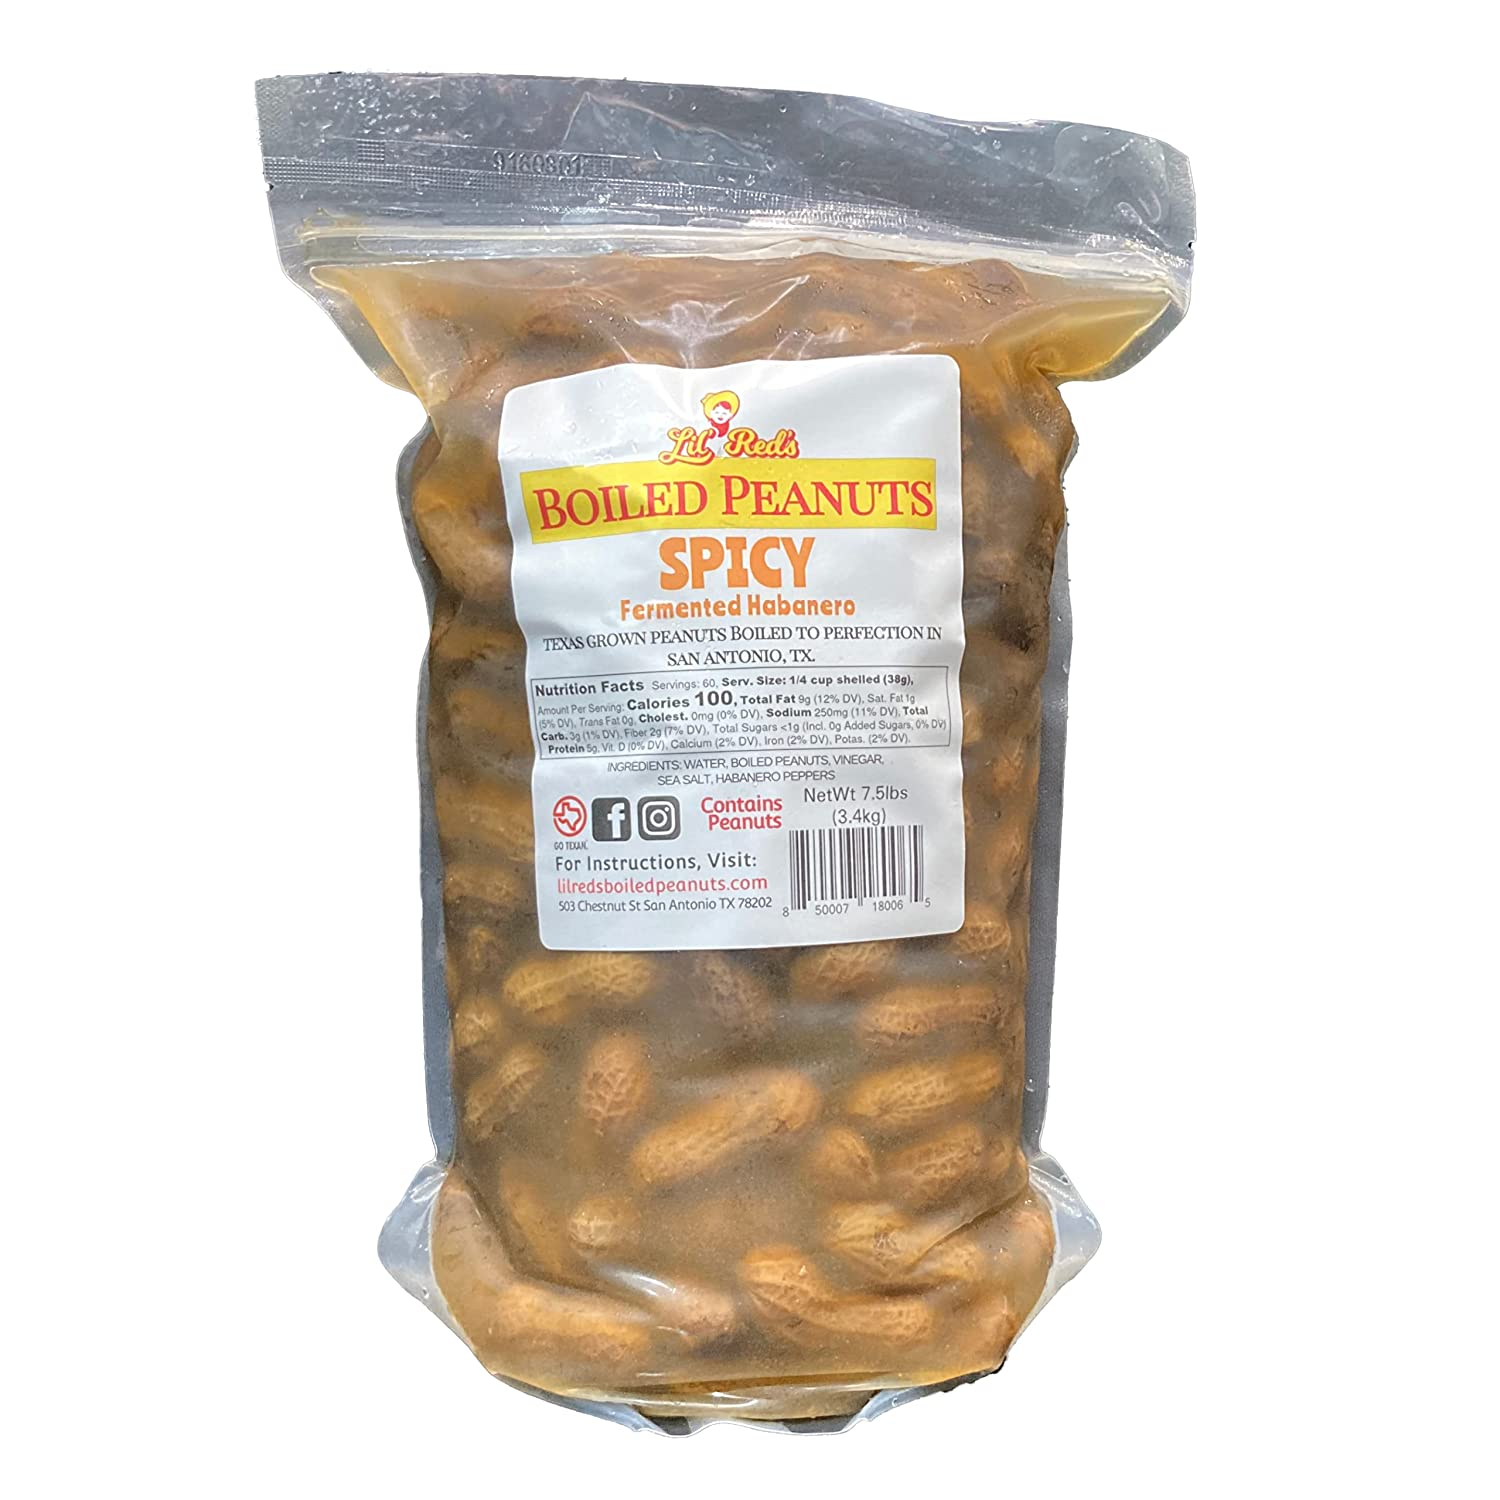 Store Lil' Red's Spicy 25% OFF Boiled Peanuts to 7.5lbs Ready Eat